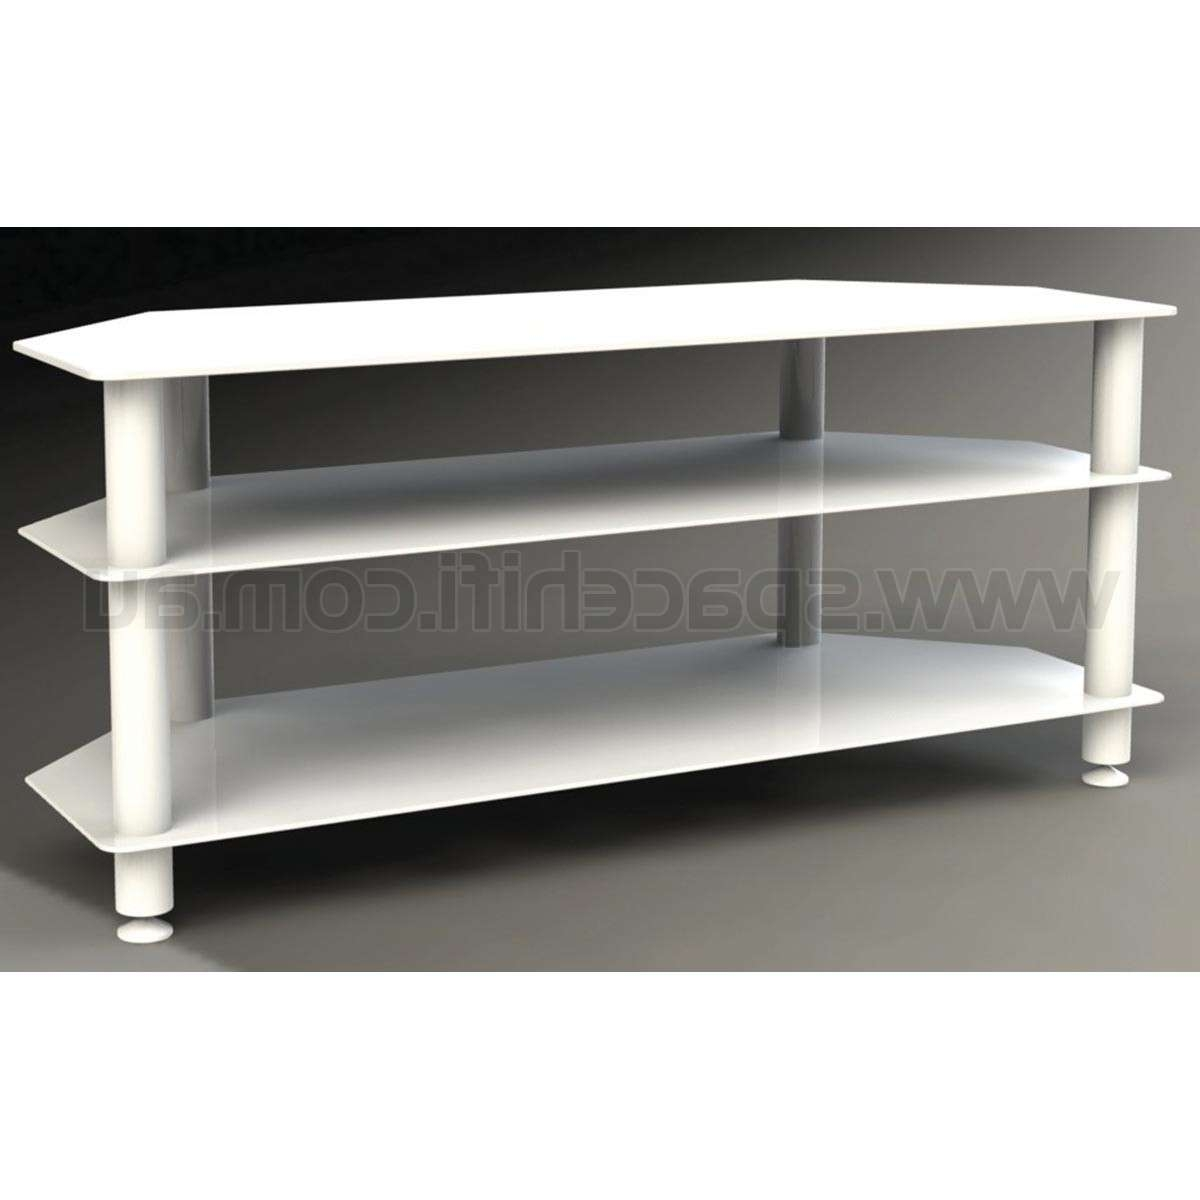 Tauris Ace 1200Mm 3 Shelf White Glass Tv Unit Stand | Space Hi Fi Within White Glass Tv Stands (View 9 of 15)